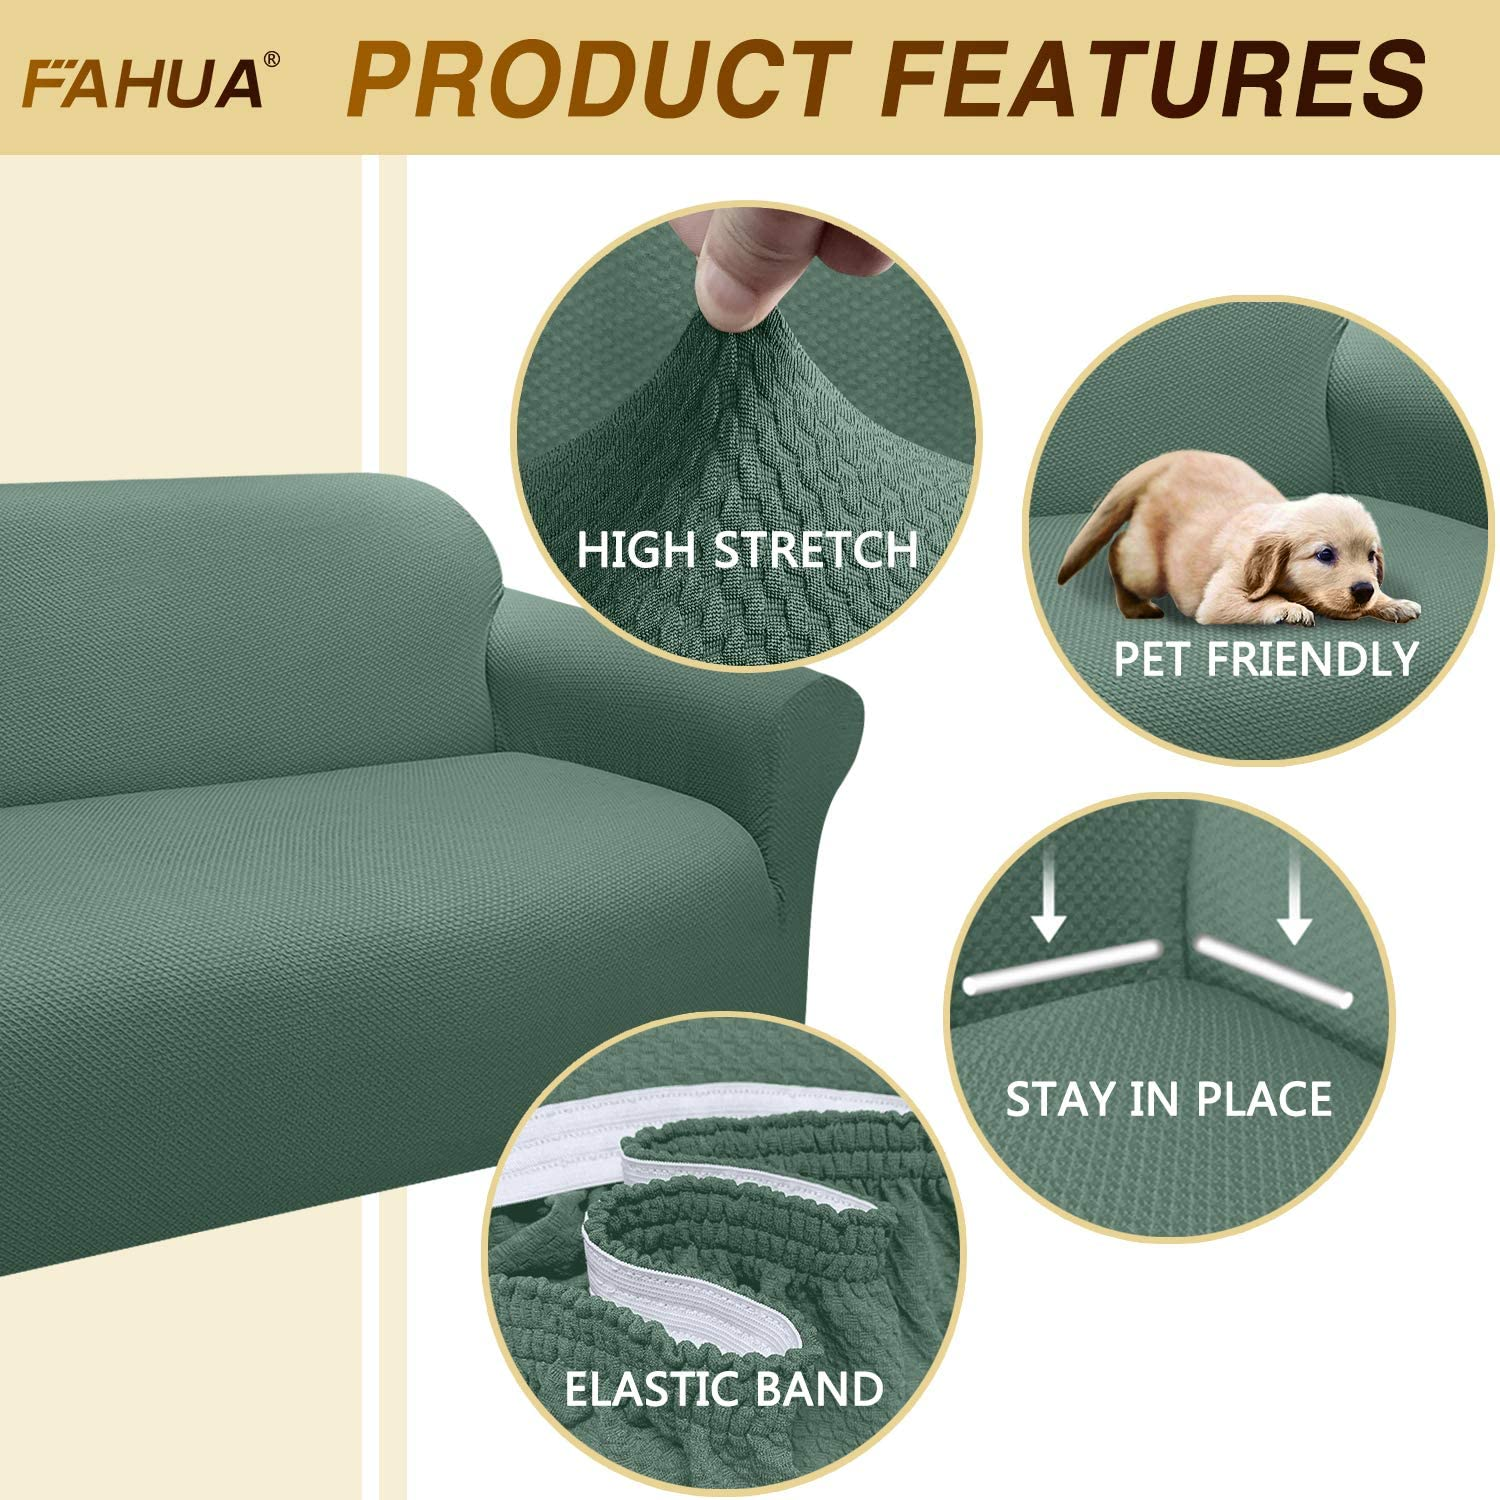 FAHUA Thick Loveseat Couch Covers 1-Piece Stretch Sofa Cover Slipcover Jacquard Non-Slip Furniture Protector for Dogs Pets Kids Machine Washable Medium, Beige